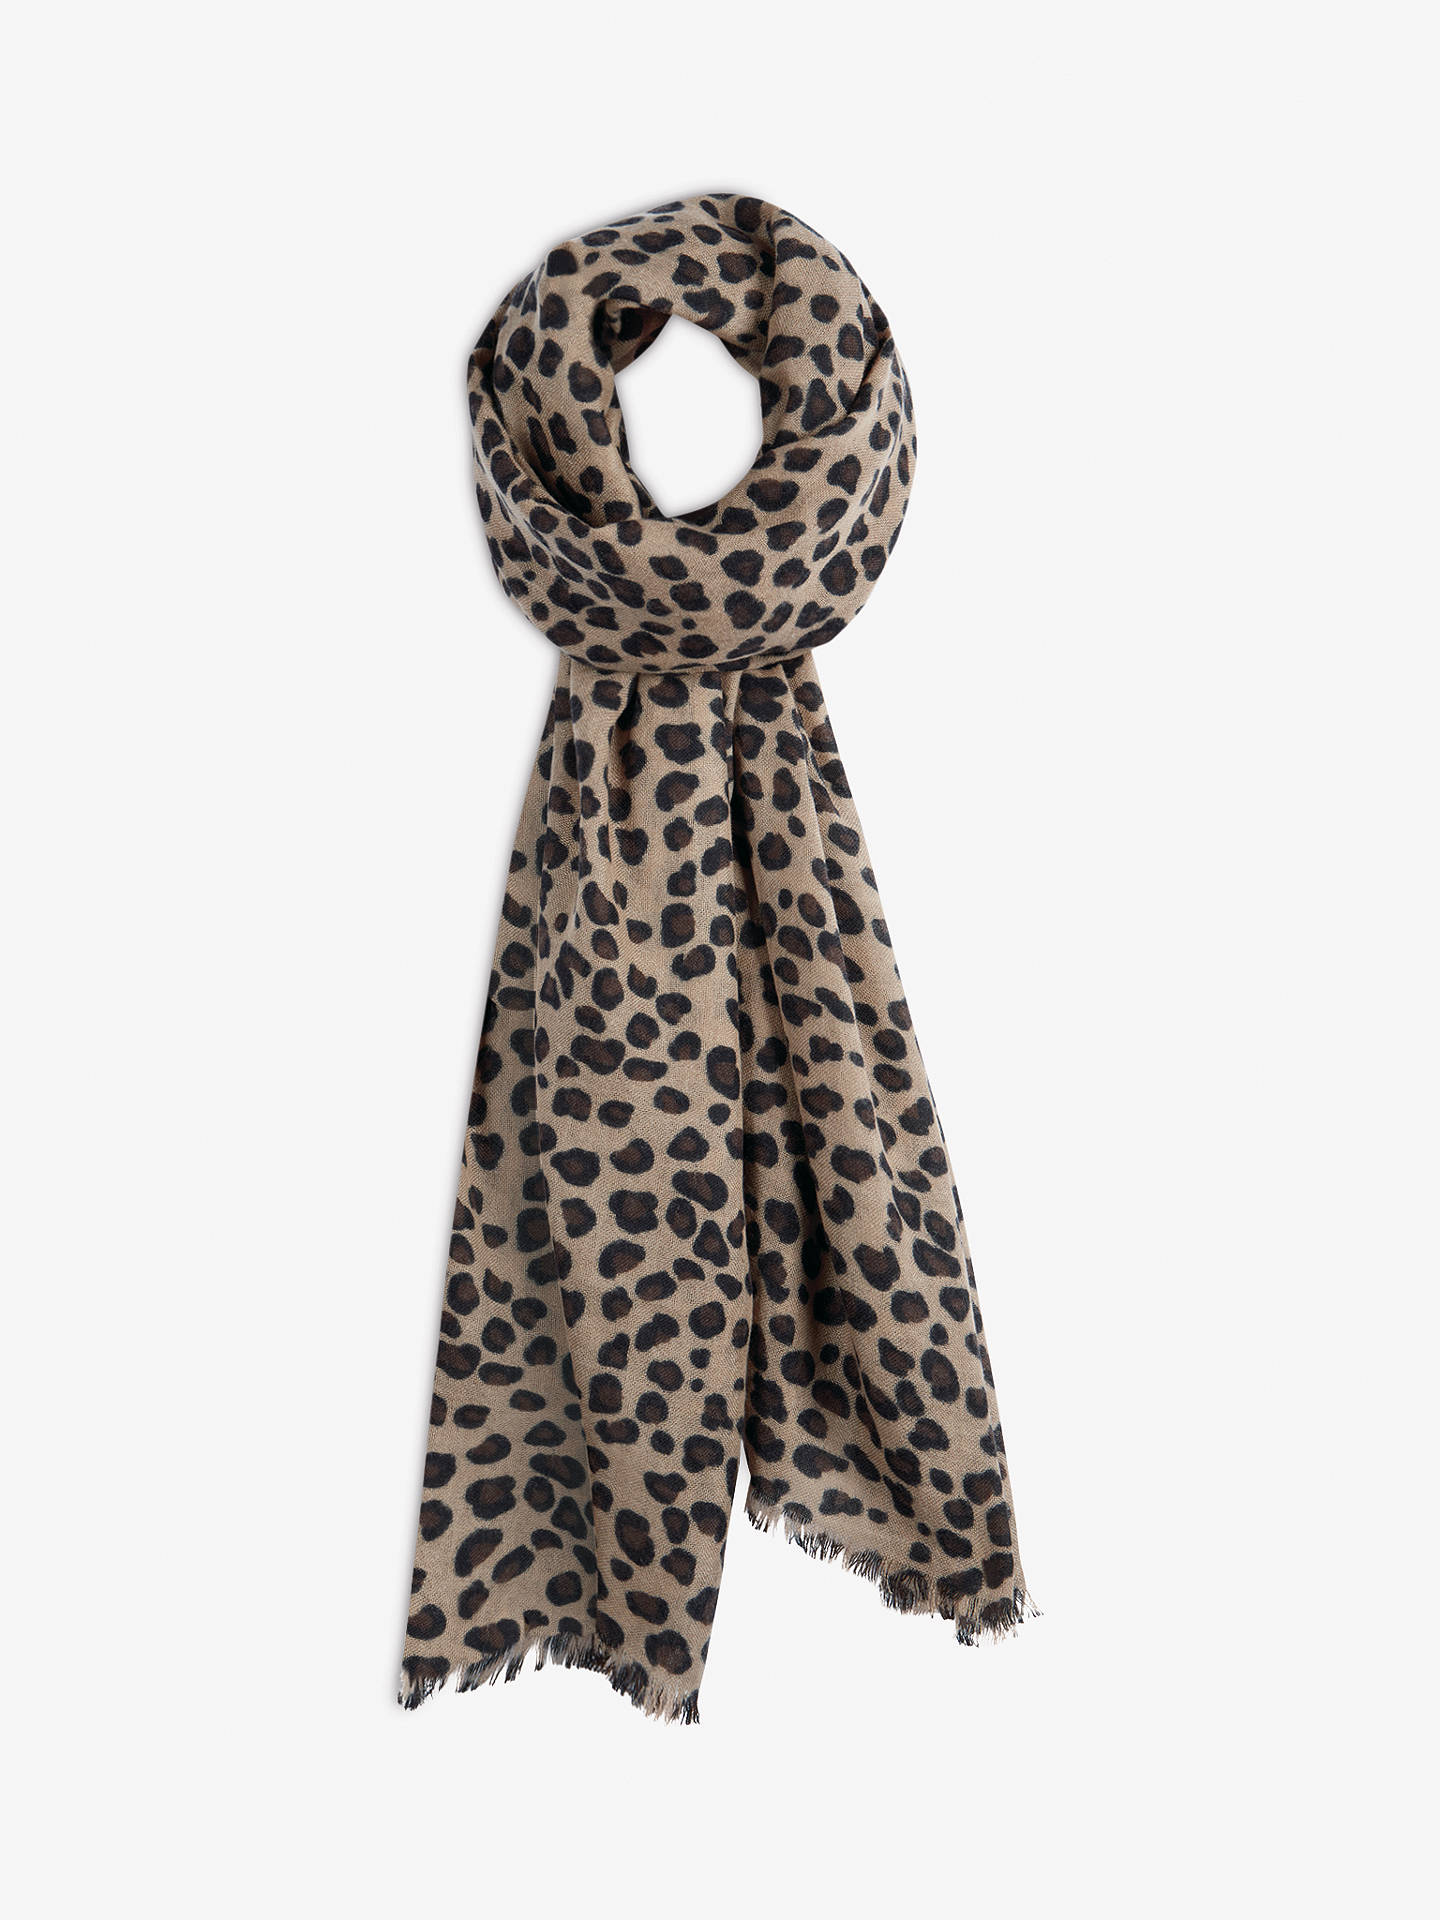 Fashion style Leopard grey print scarf photo for woman